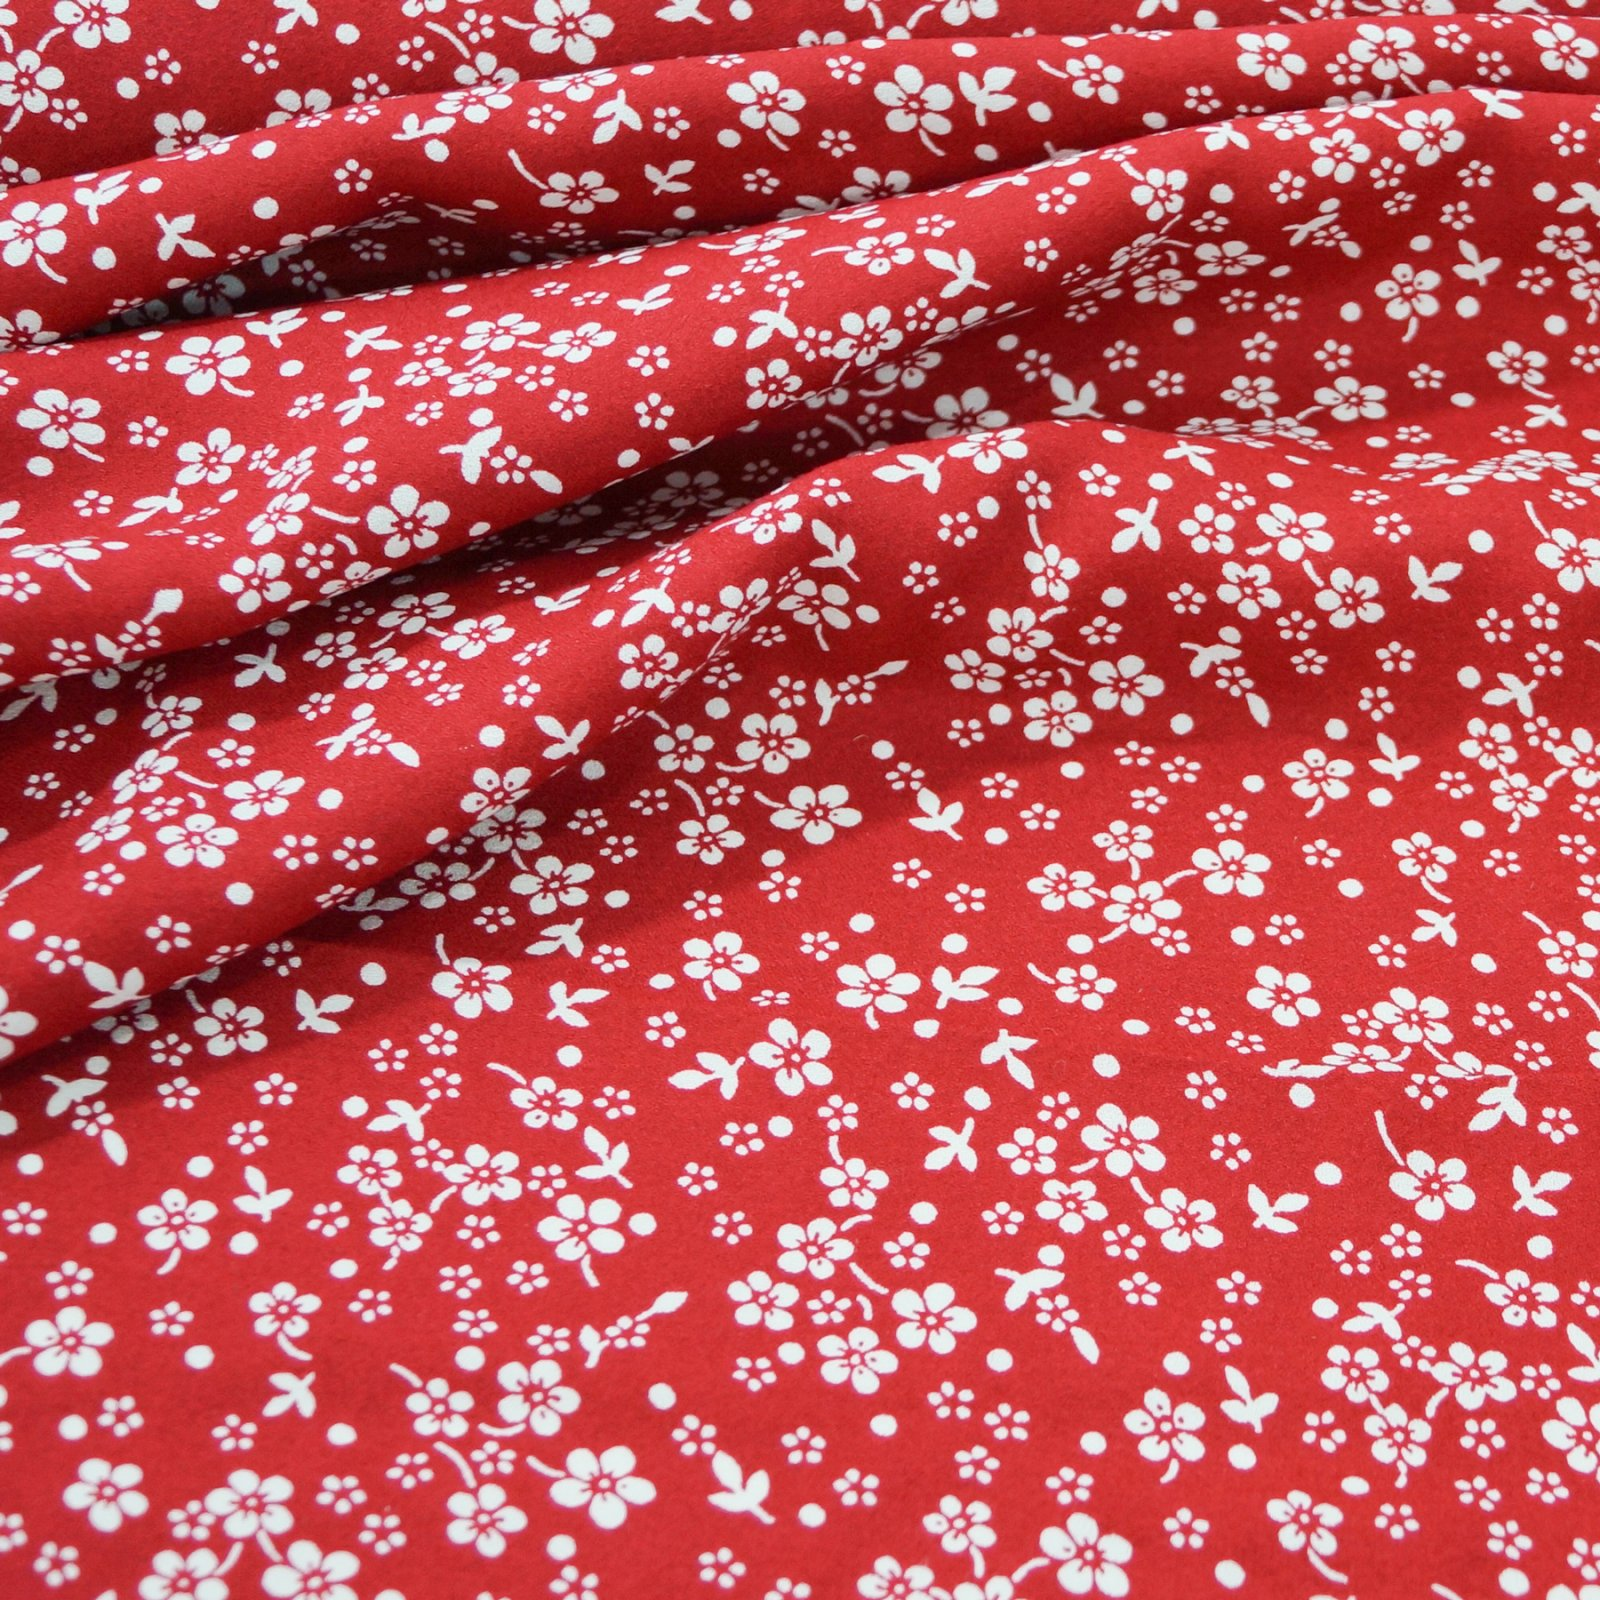 Rayon - Crimson with Small Cream Flowers